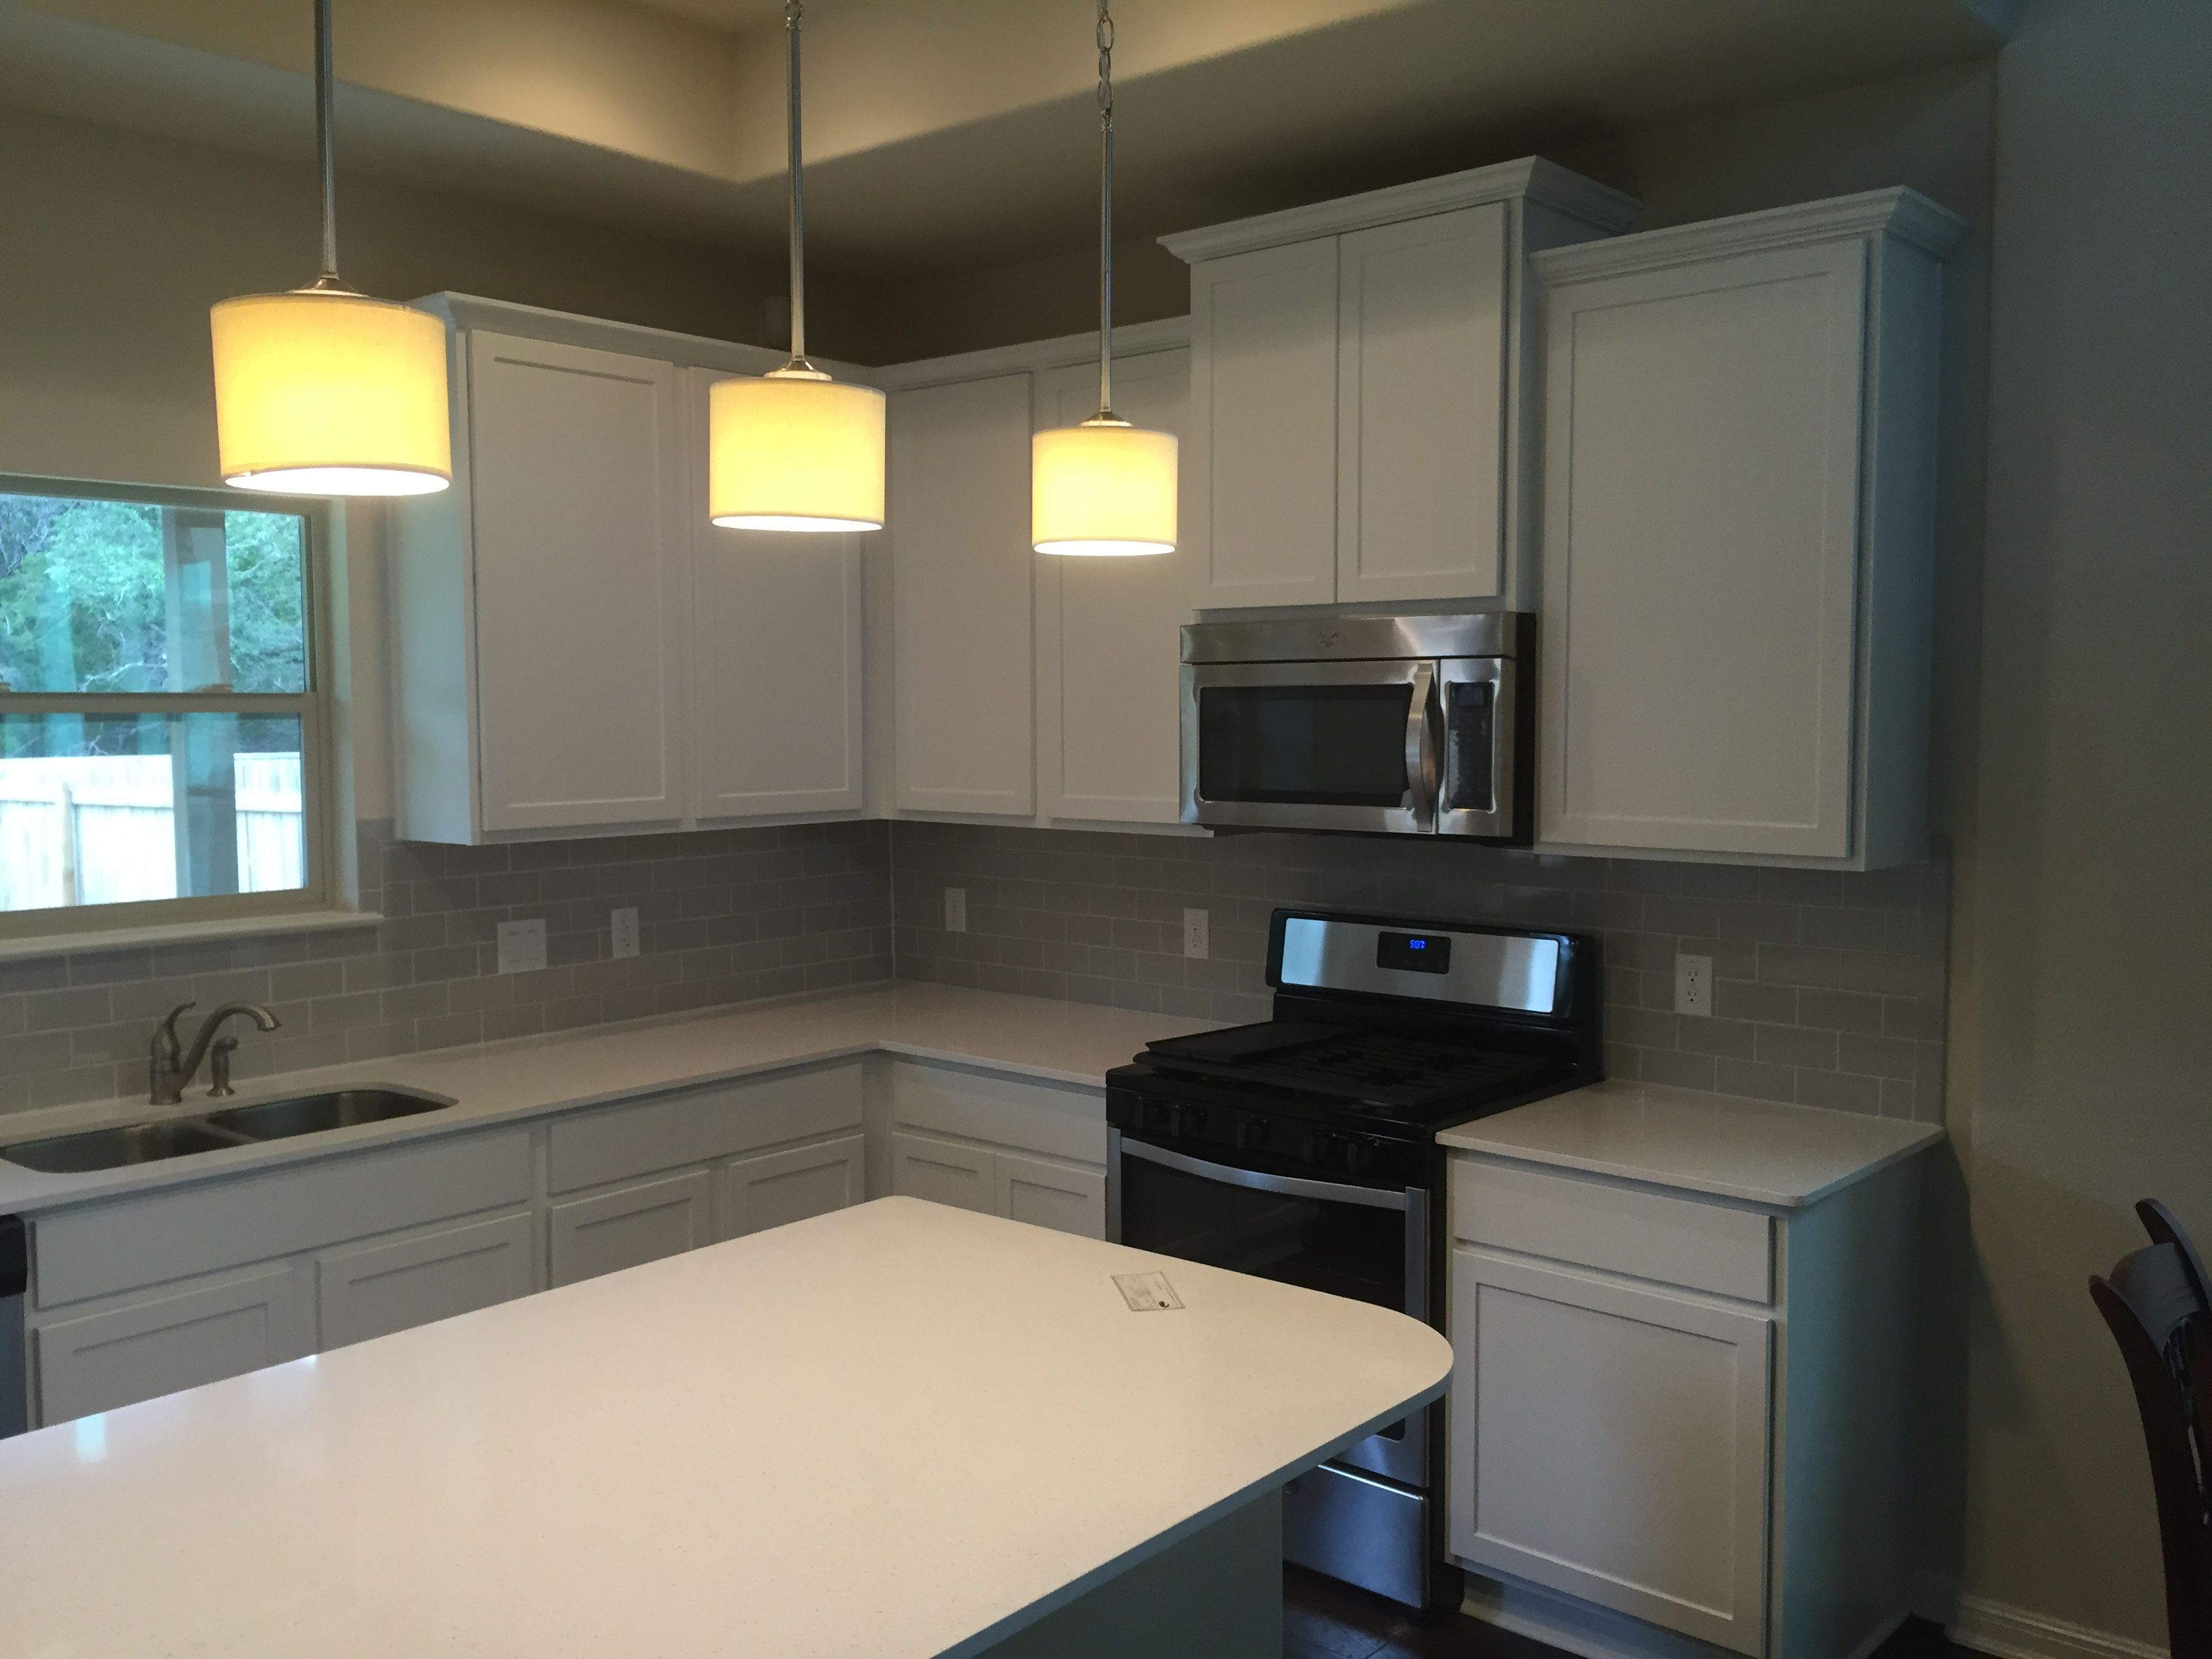 We Painted The Dark Kitchen Cabinets In This Cedar Park Home White To Help Brighten Up The Kitchen After Kitchen Cabinets Dark Kitchen Dark Kitchen Cabinets